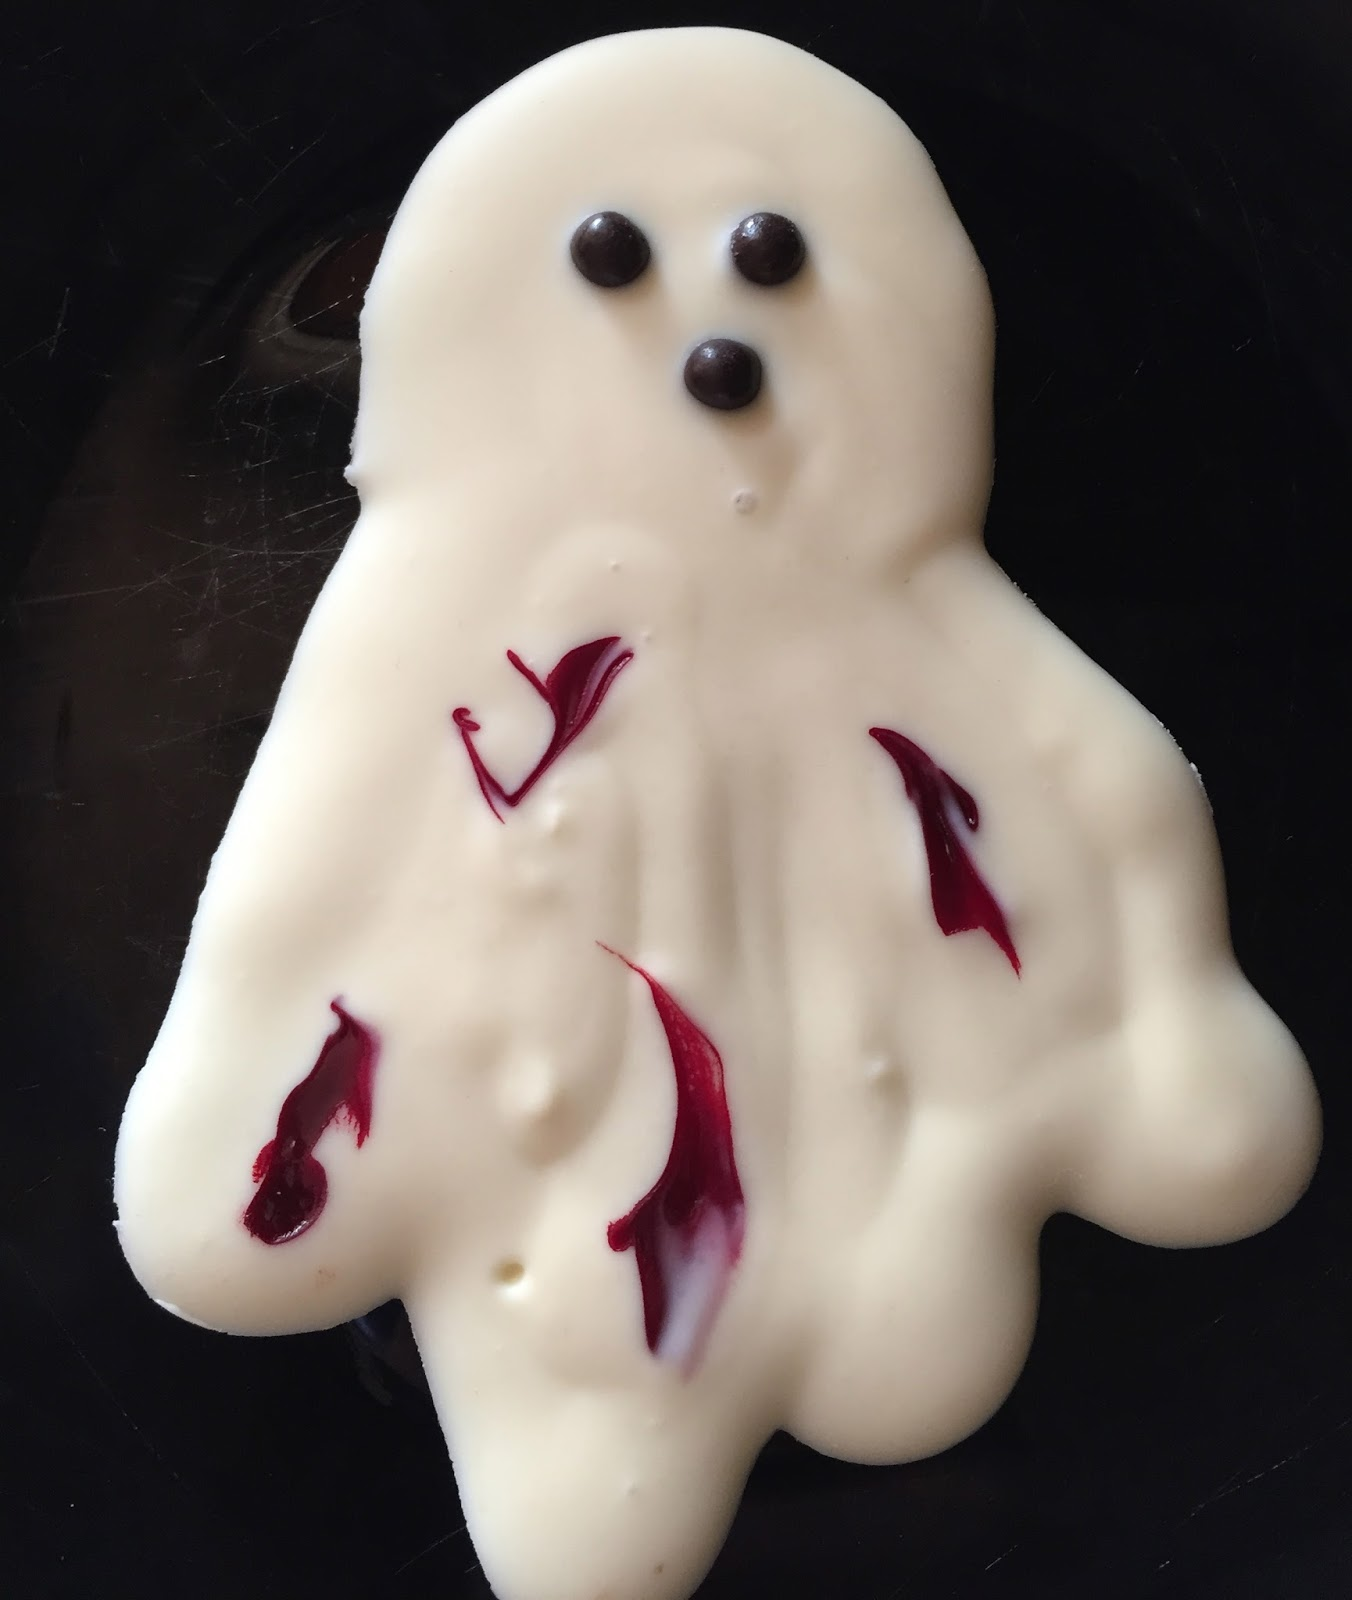 fantasma-chocolate-blanco-recetas-halloween-faciles-bruja